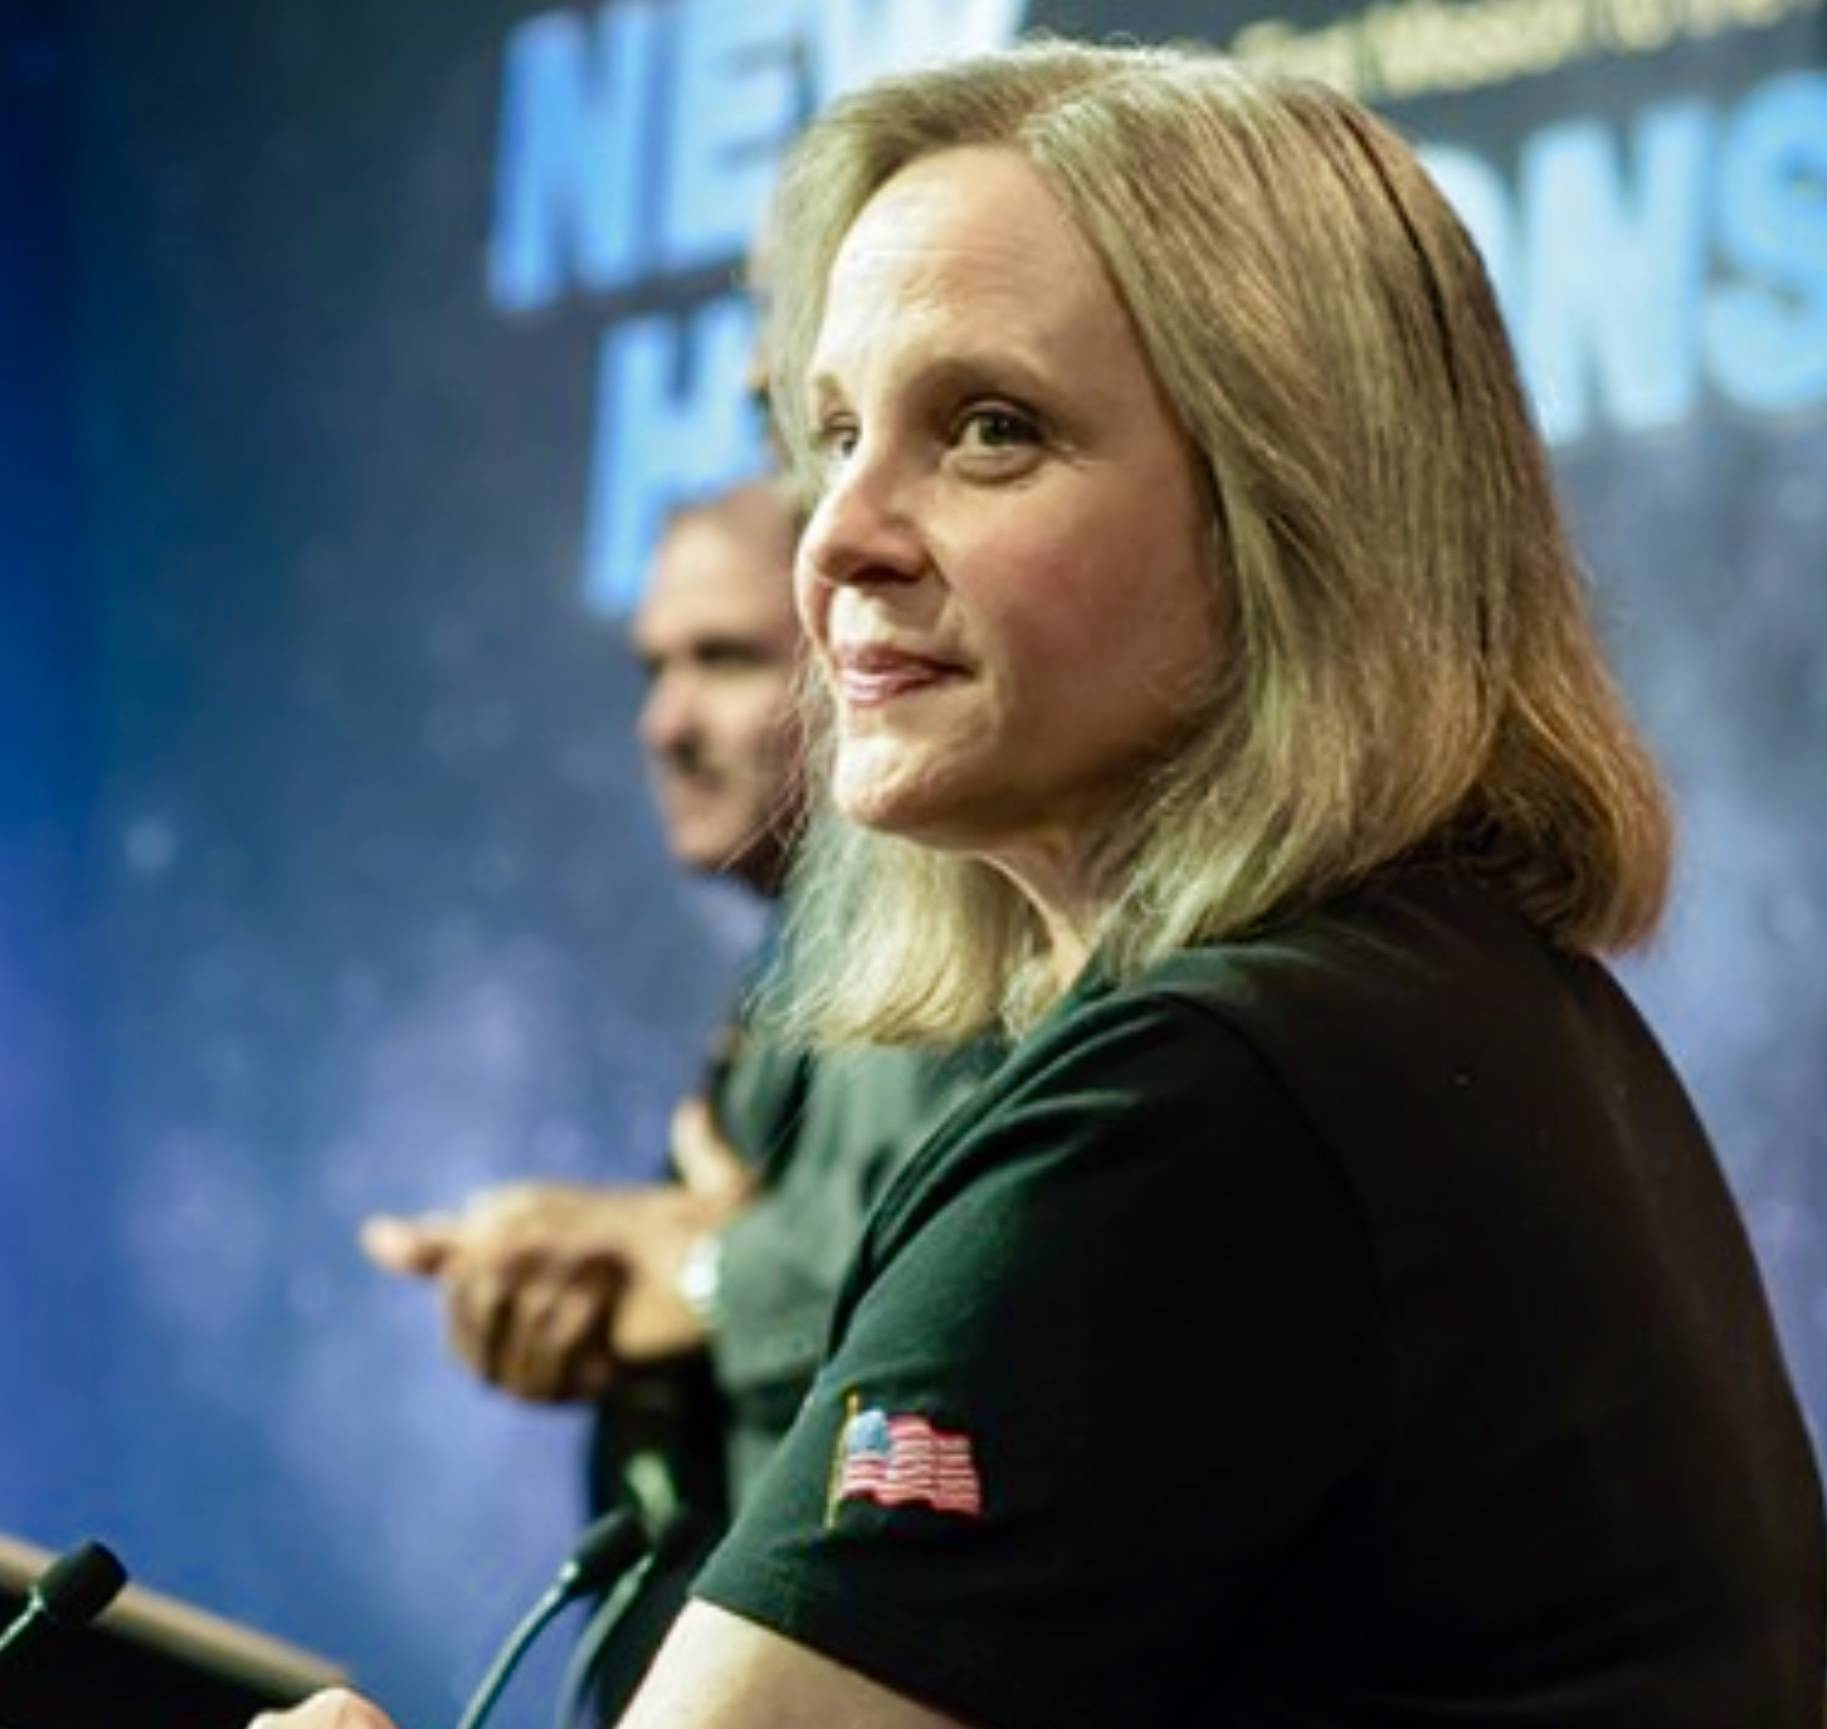 Alice Bowman of the New Horizons mission